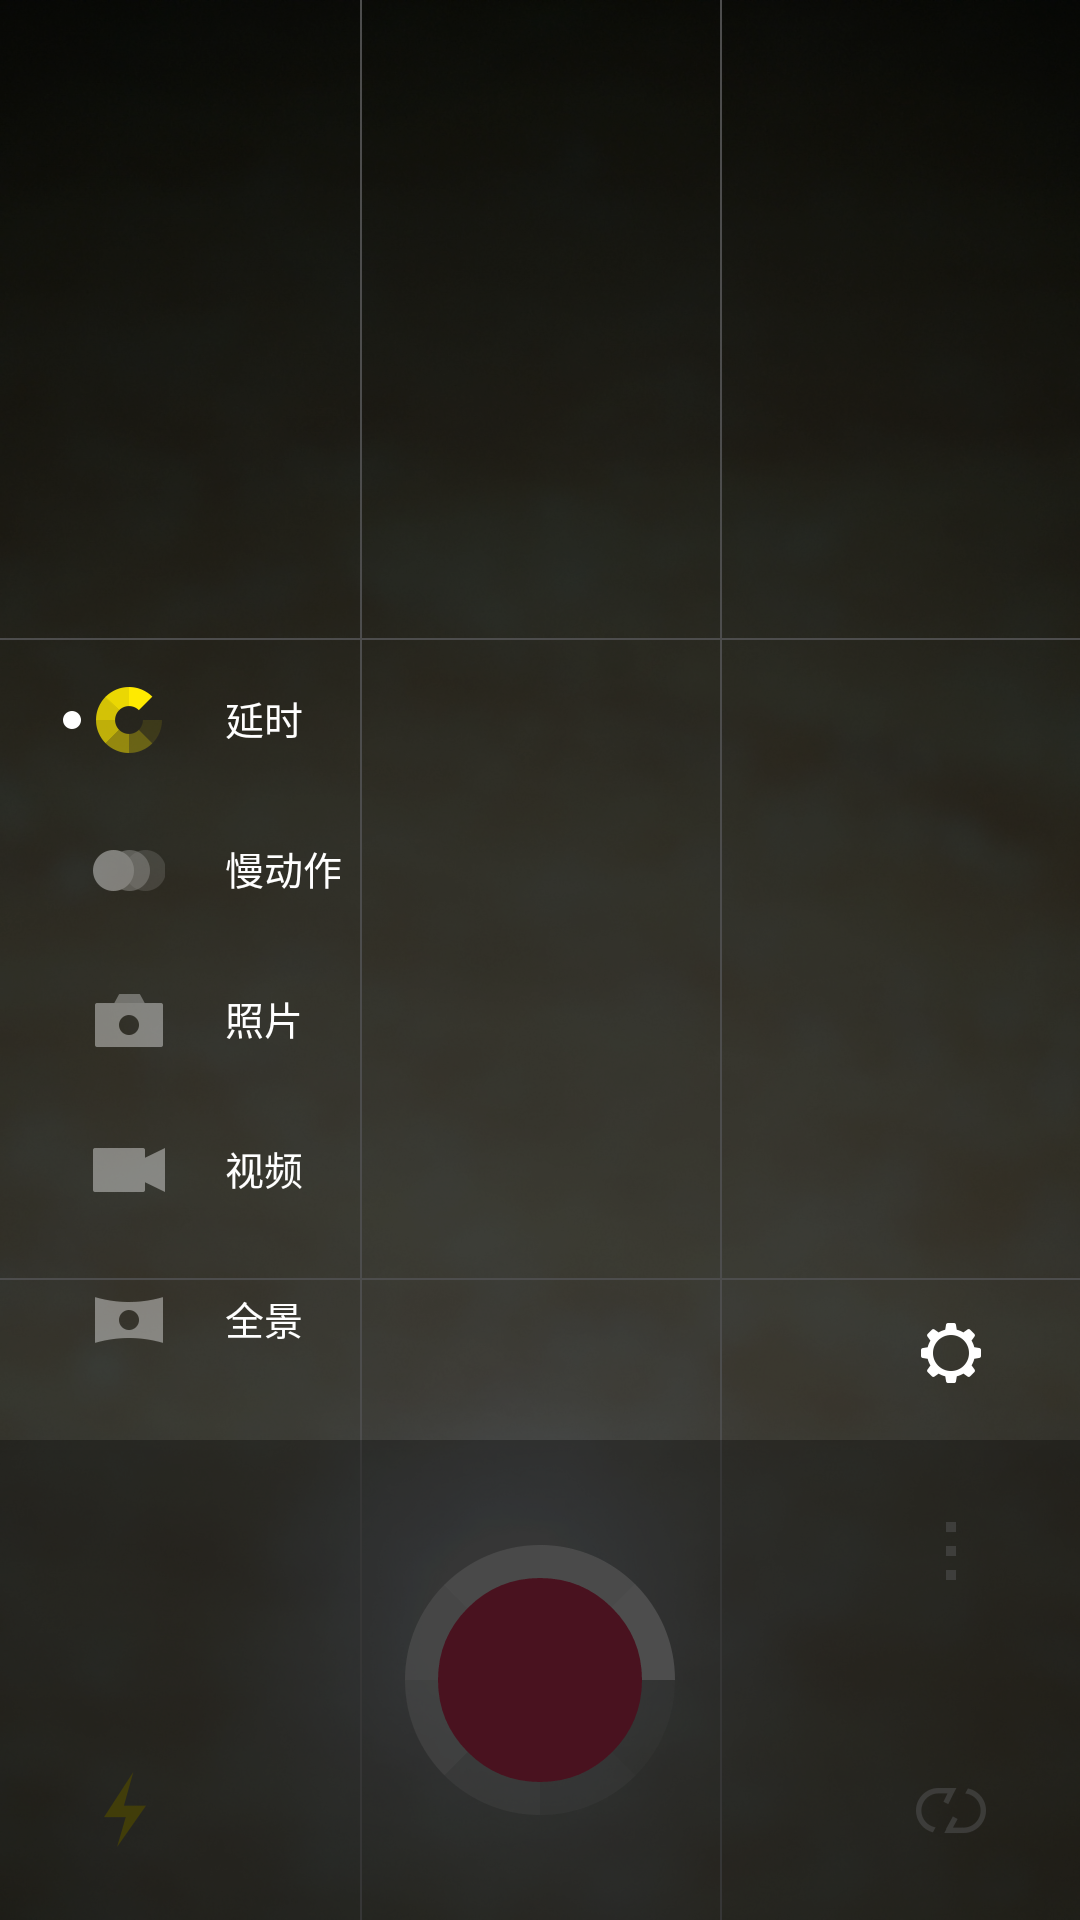 Screenshot_2015-09-12-02-28-50.png